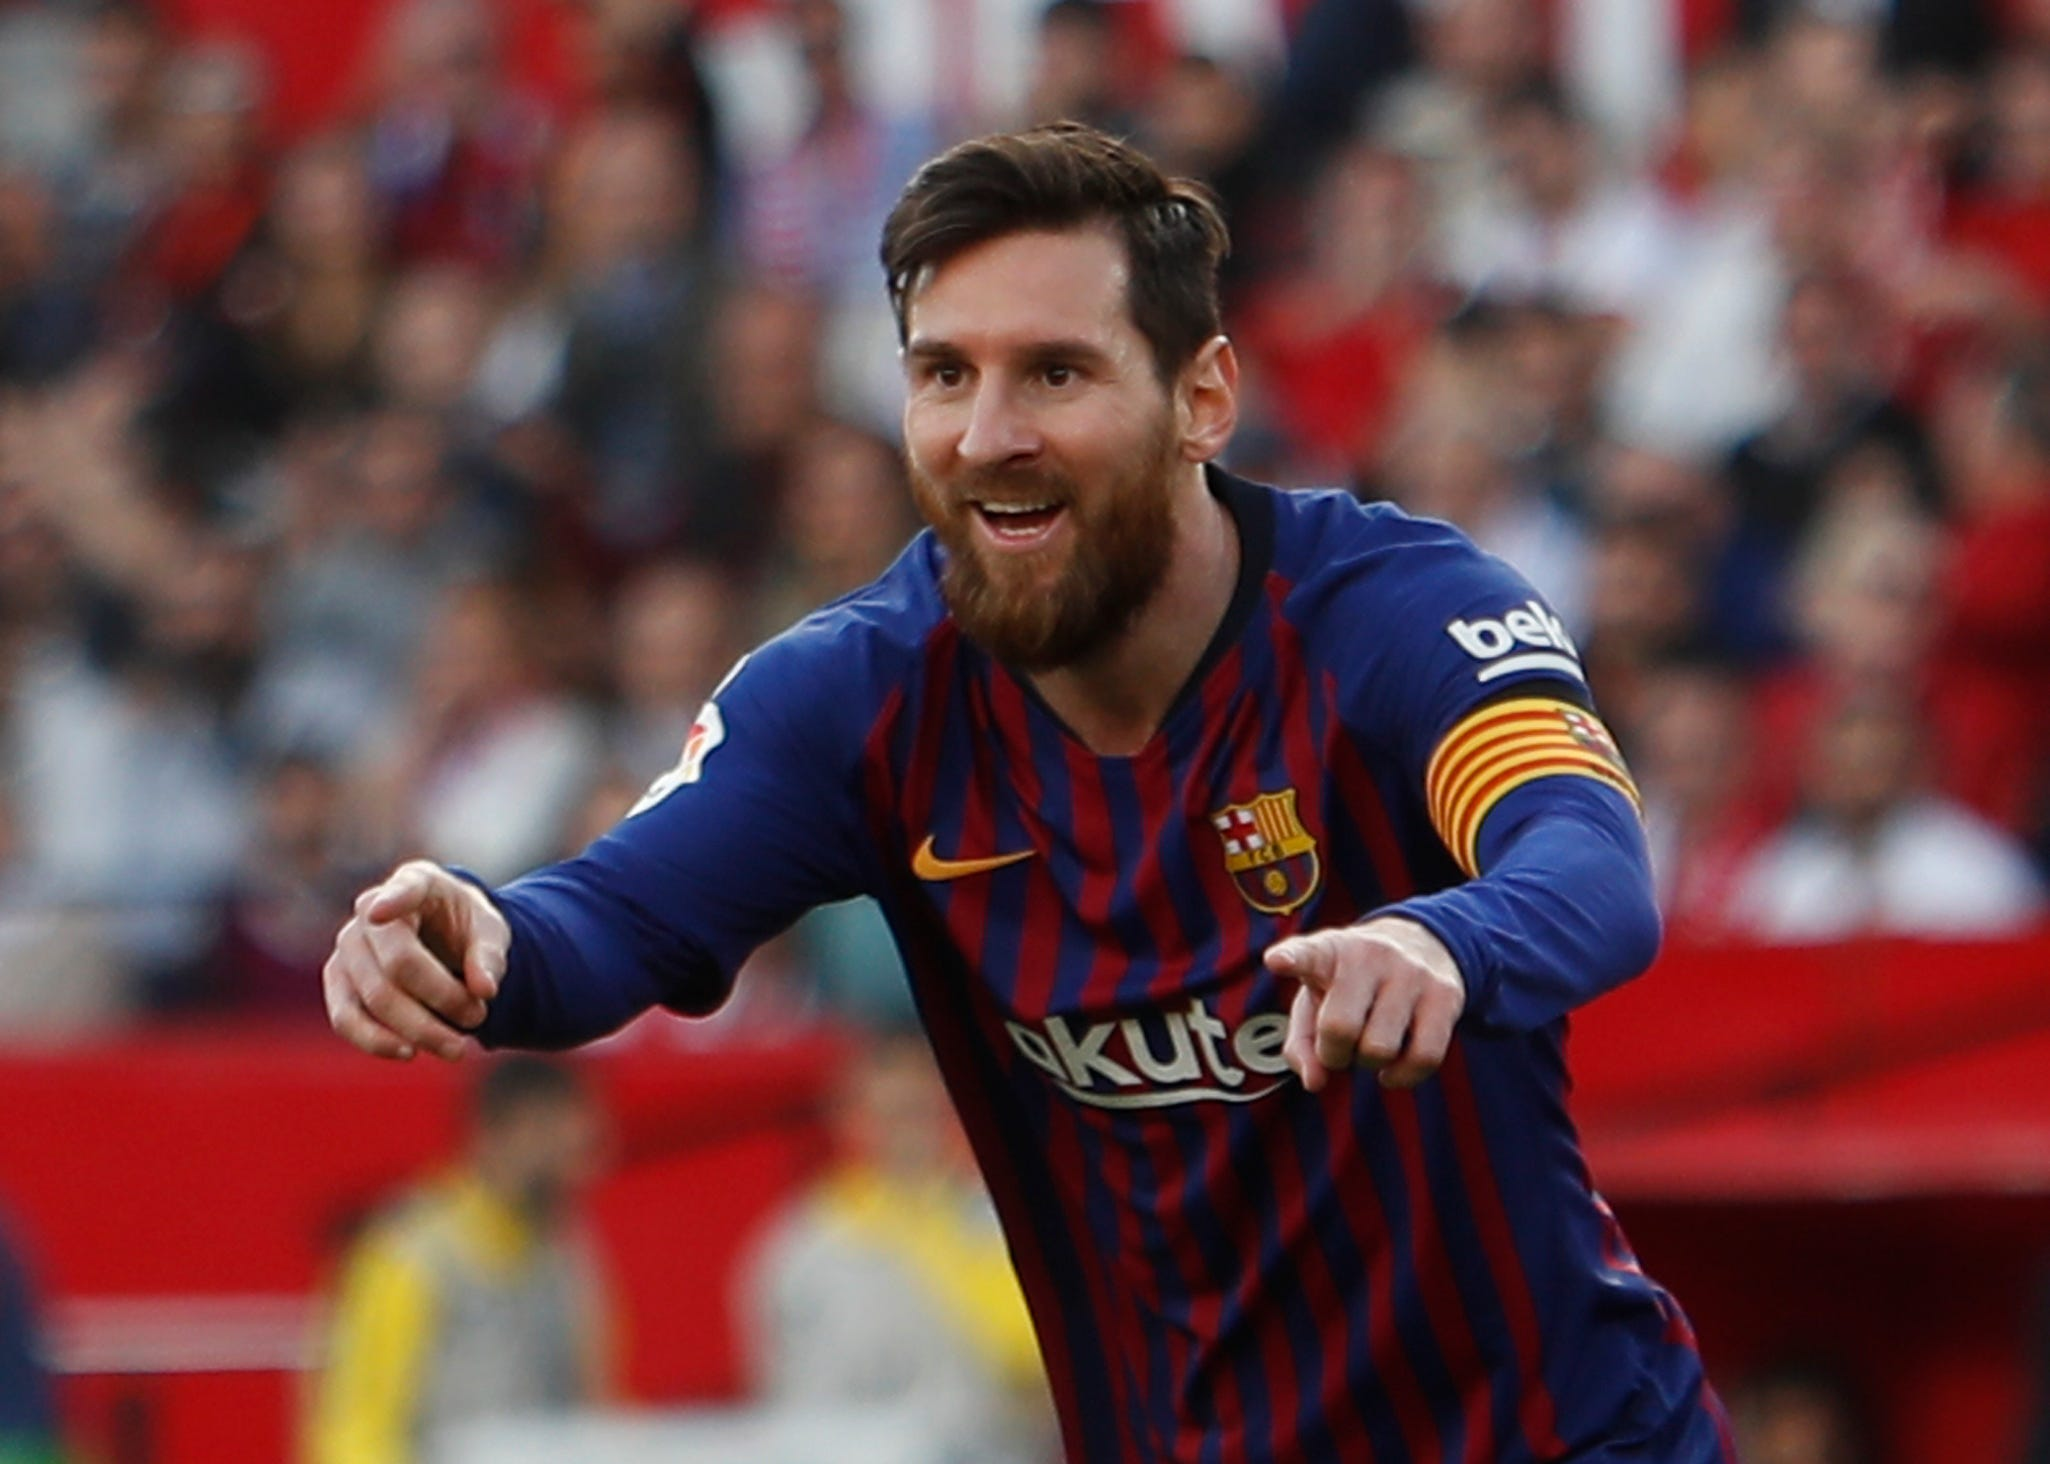 Messi scores 50th hat trick to give Barca 4-2 win at Sevilla